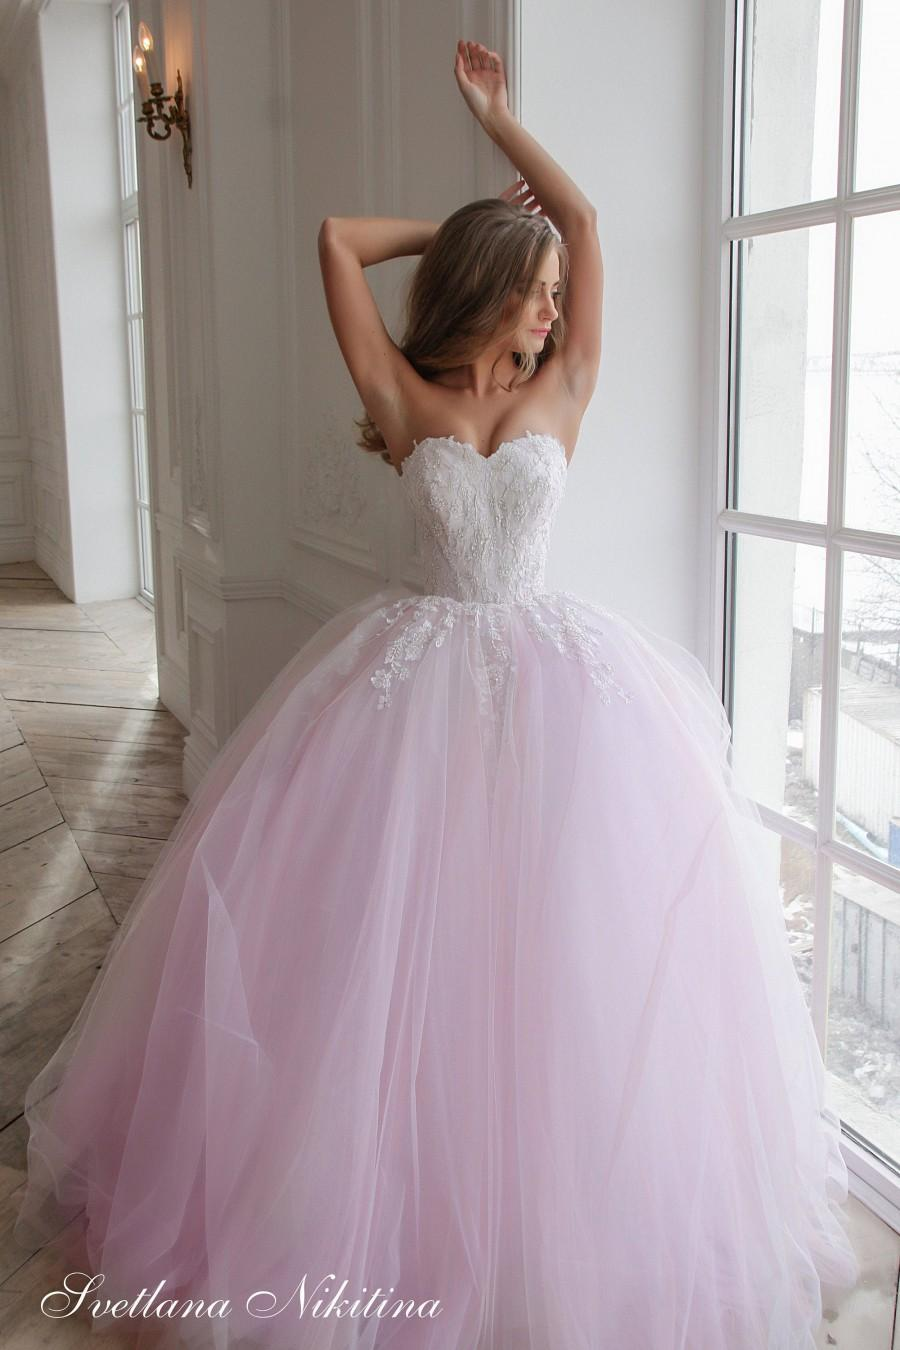 Wedding - Full wedding dress with pink by Svetlana Nikitina Pink wedding dress Lace wedding dress Princess wedding dress Ball bridal gown Sequins